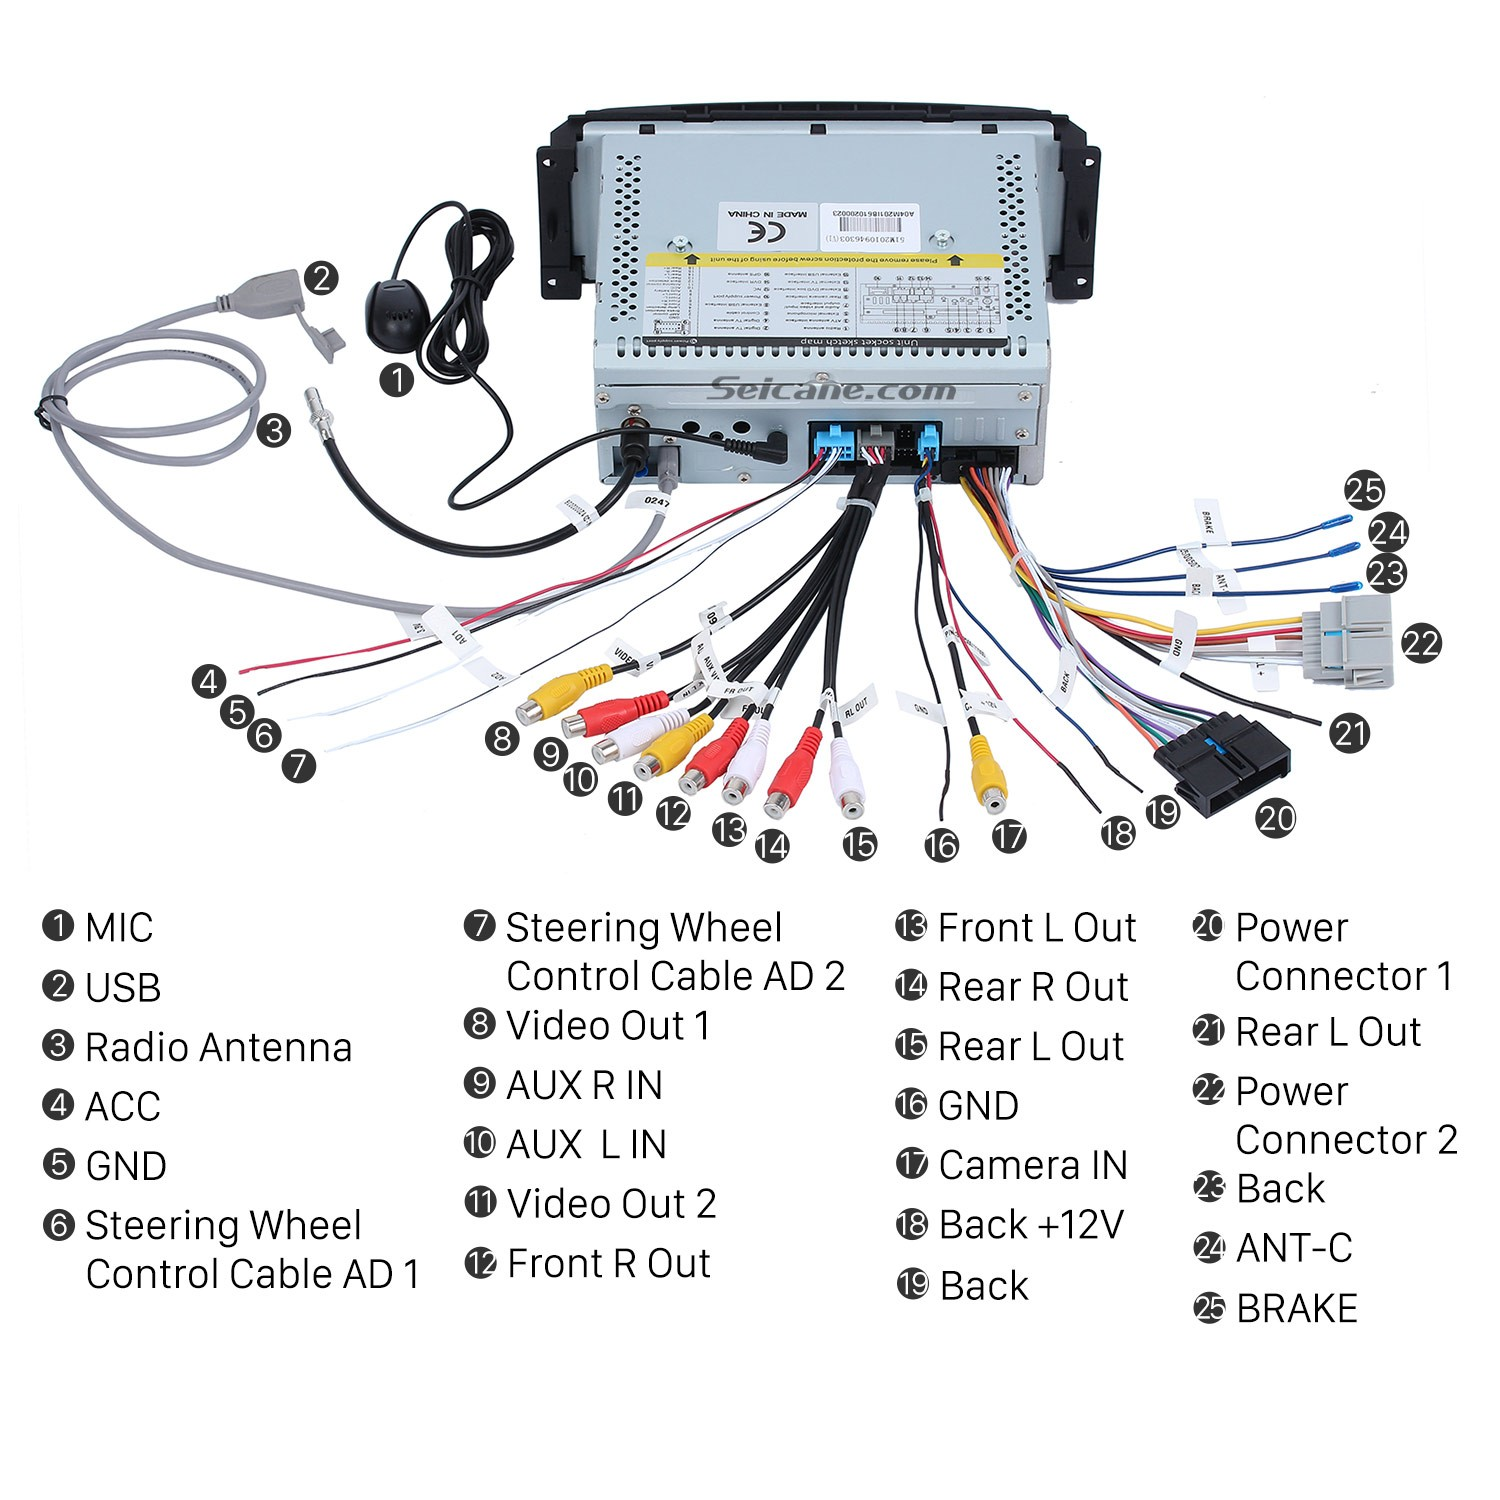 2002 Jeep Liberty Wiring Radio Real Diagram 02 Stereo How To Install A 2007 Fix Cd Player Sport